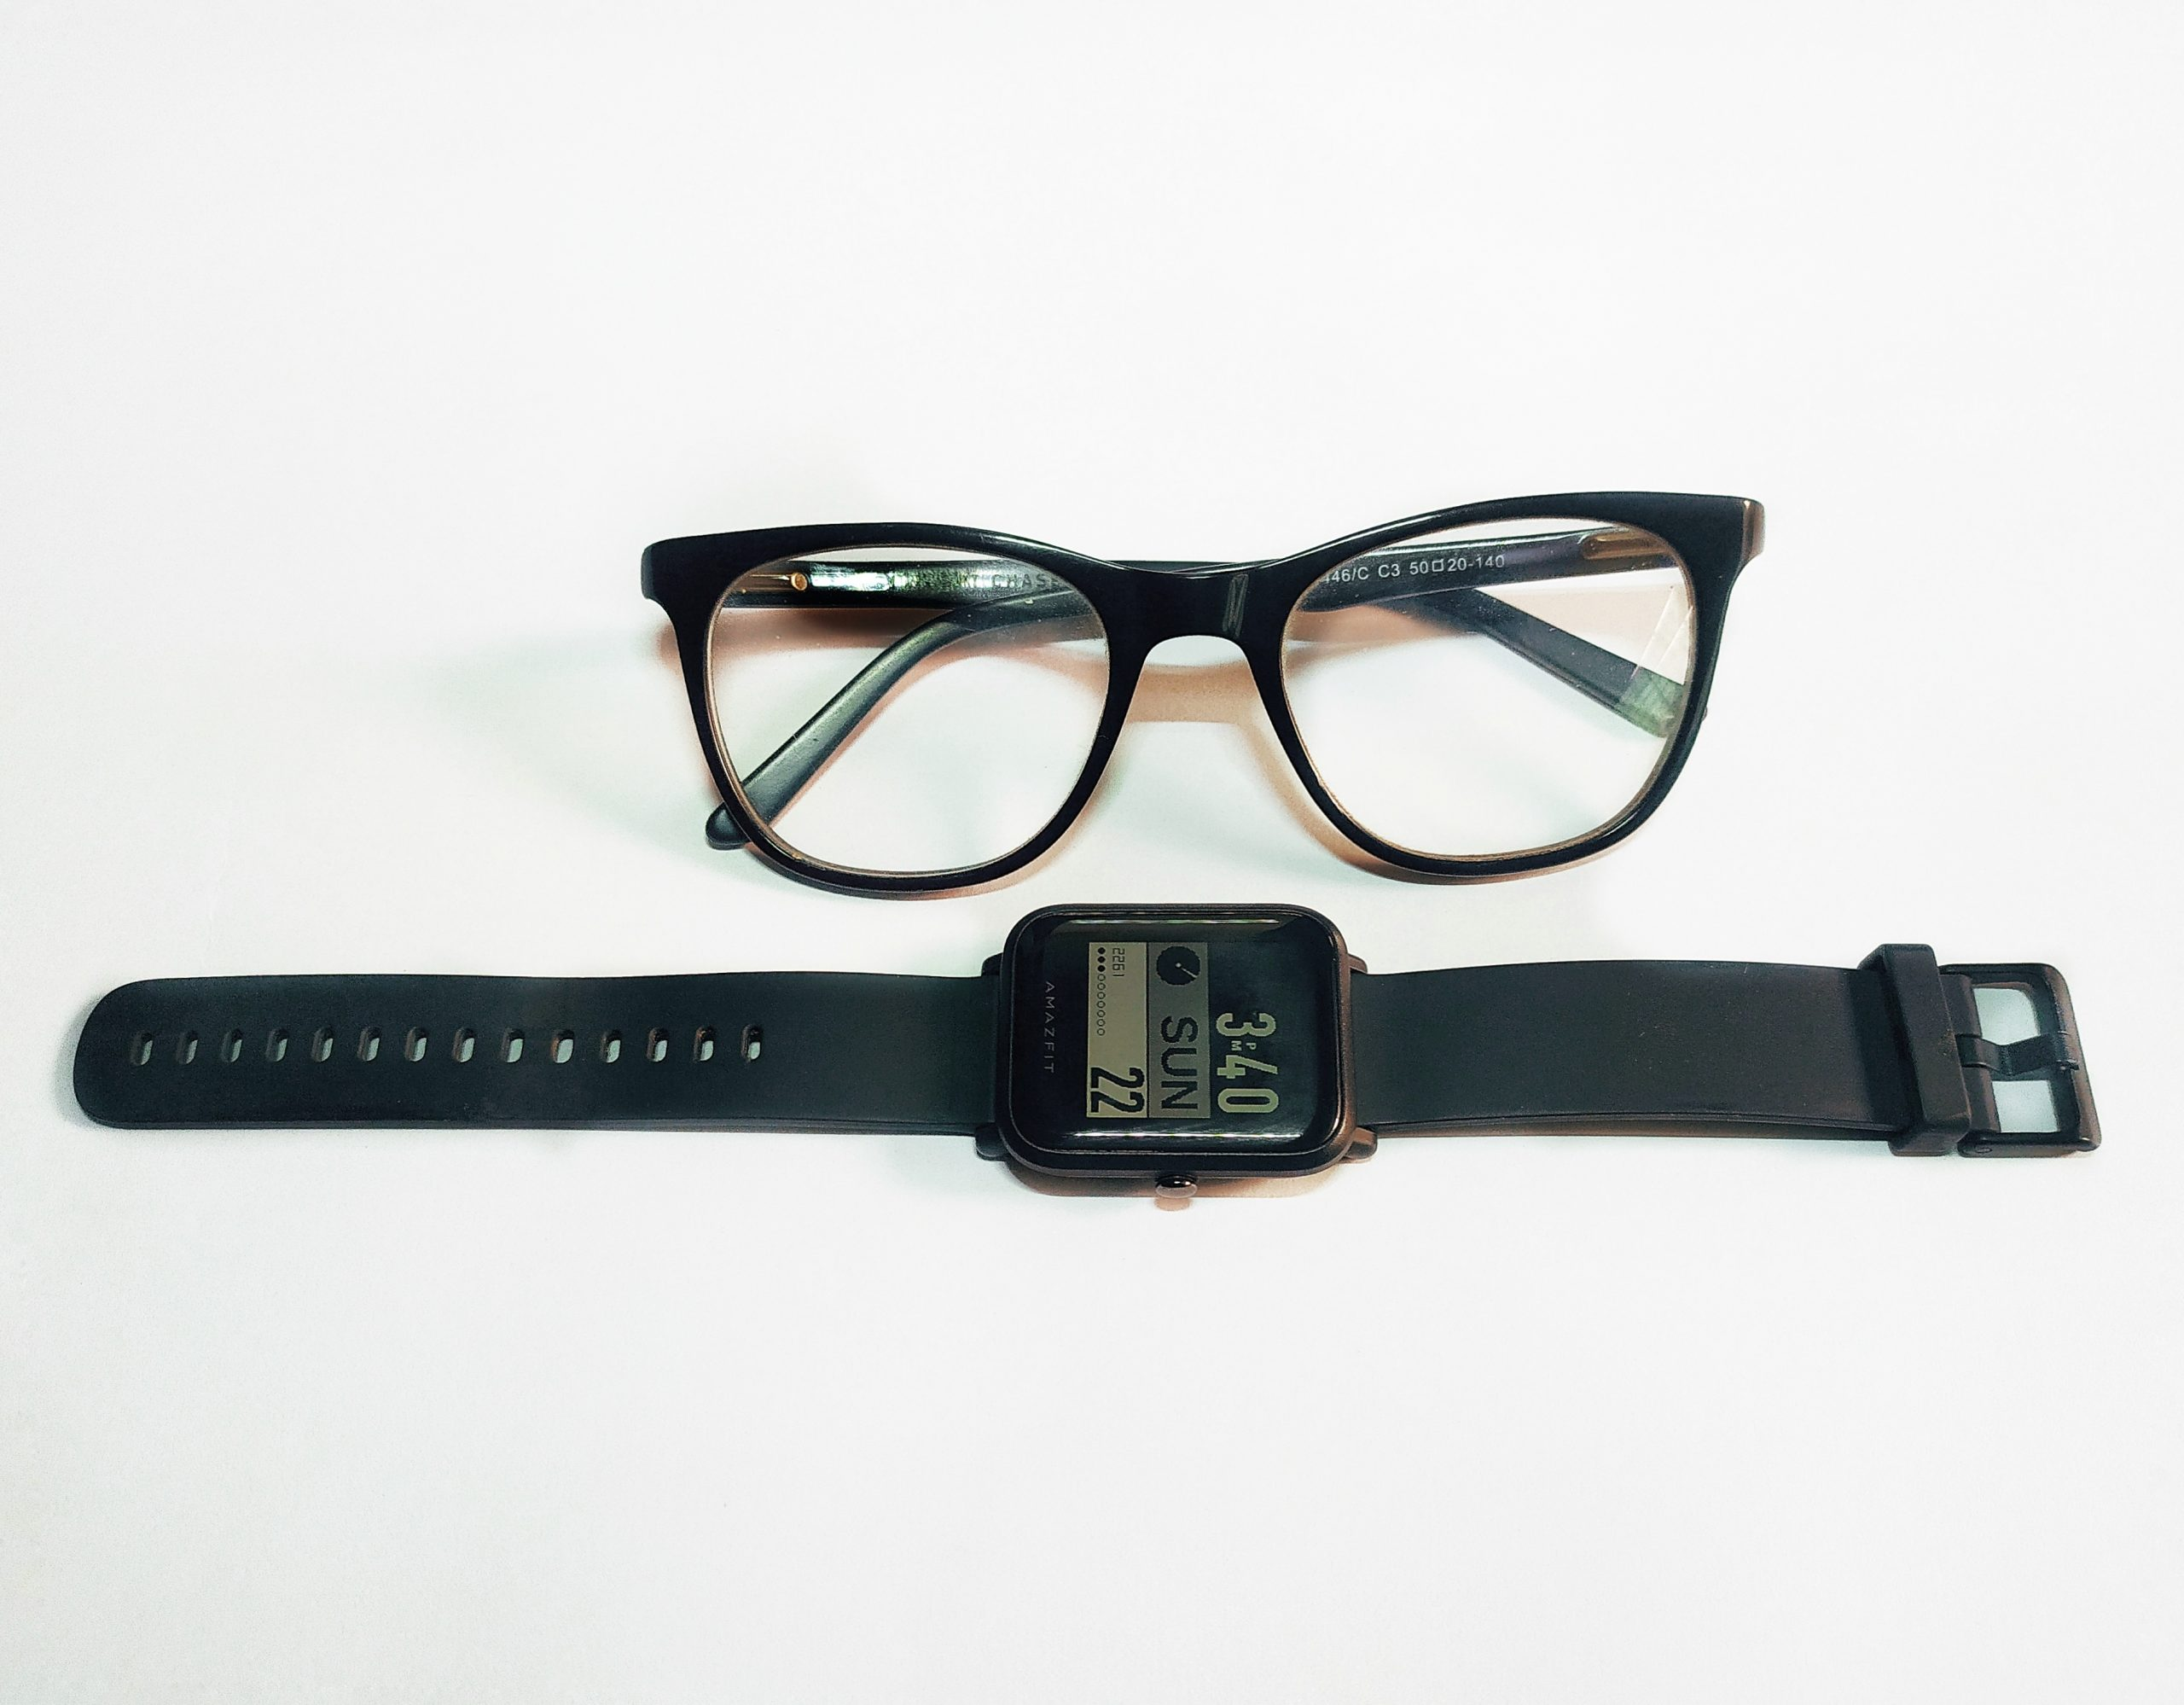 A smartwatch and goggles